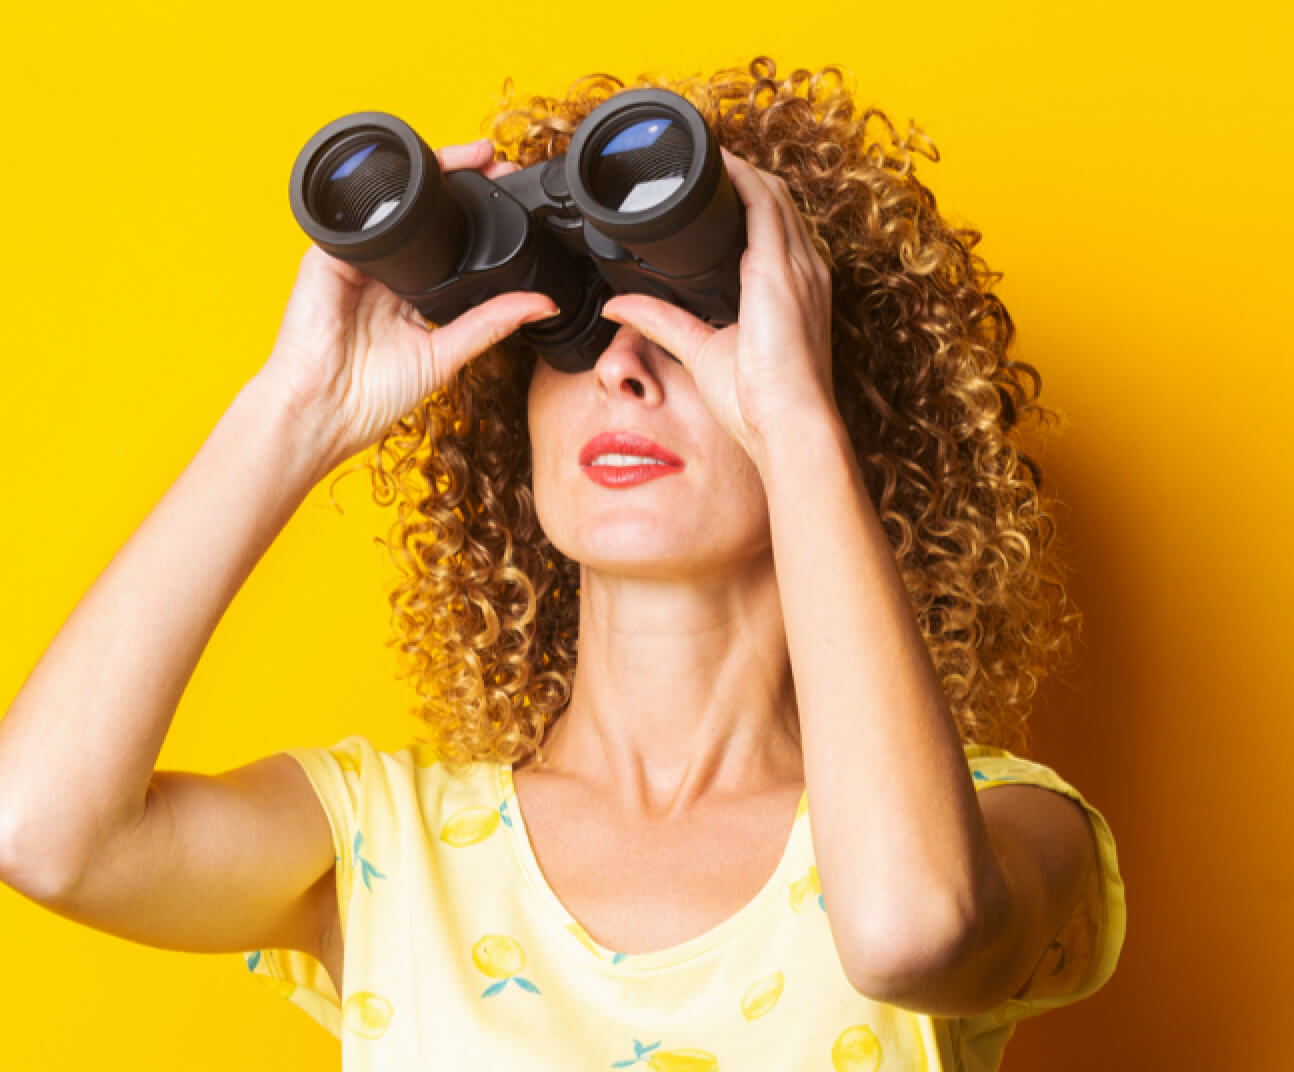 Woman looking out with binoculars